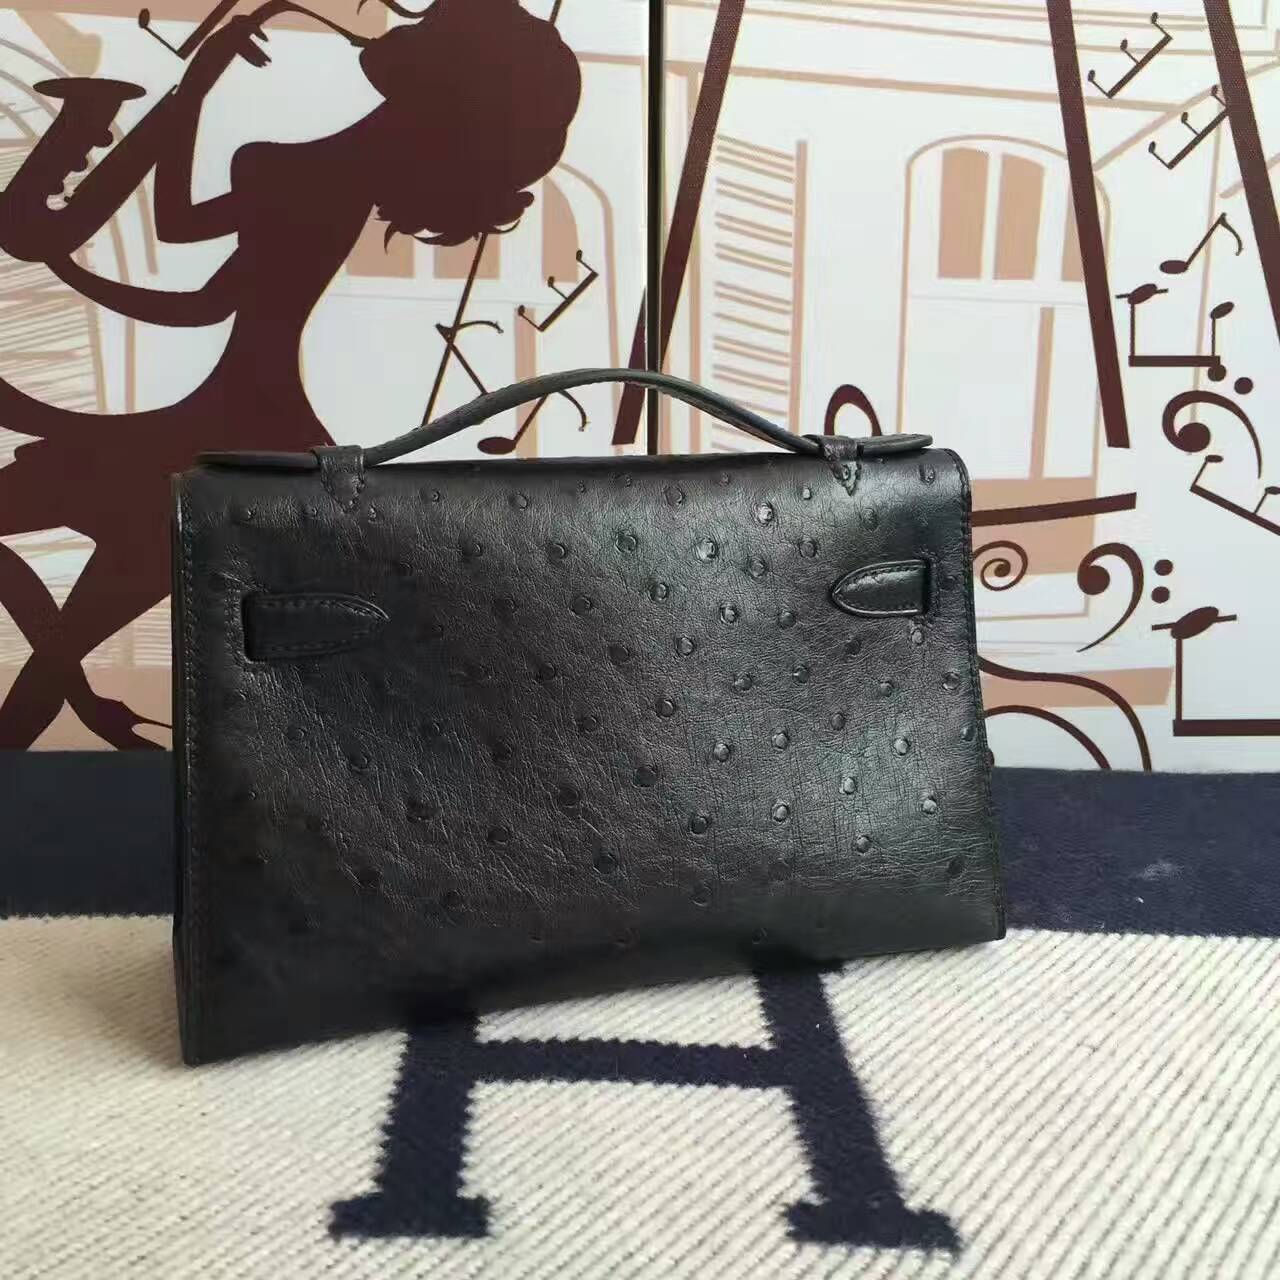 Discount Hermes Minikelly Clutch Bag in CK89 Black Ostrich Leather